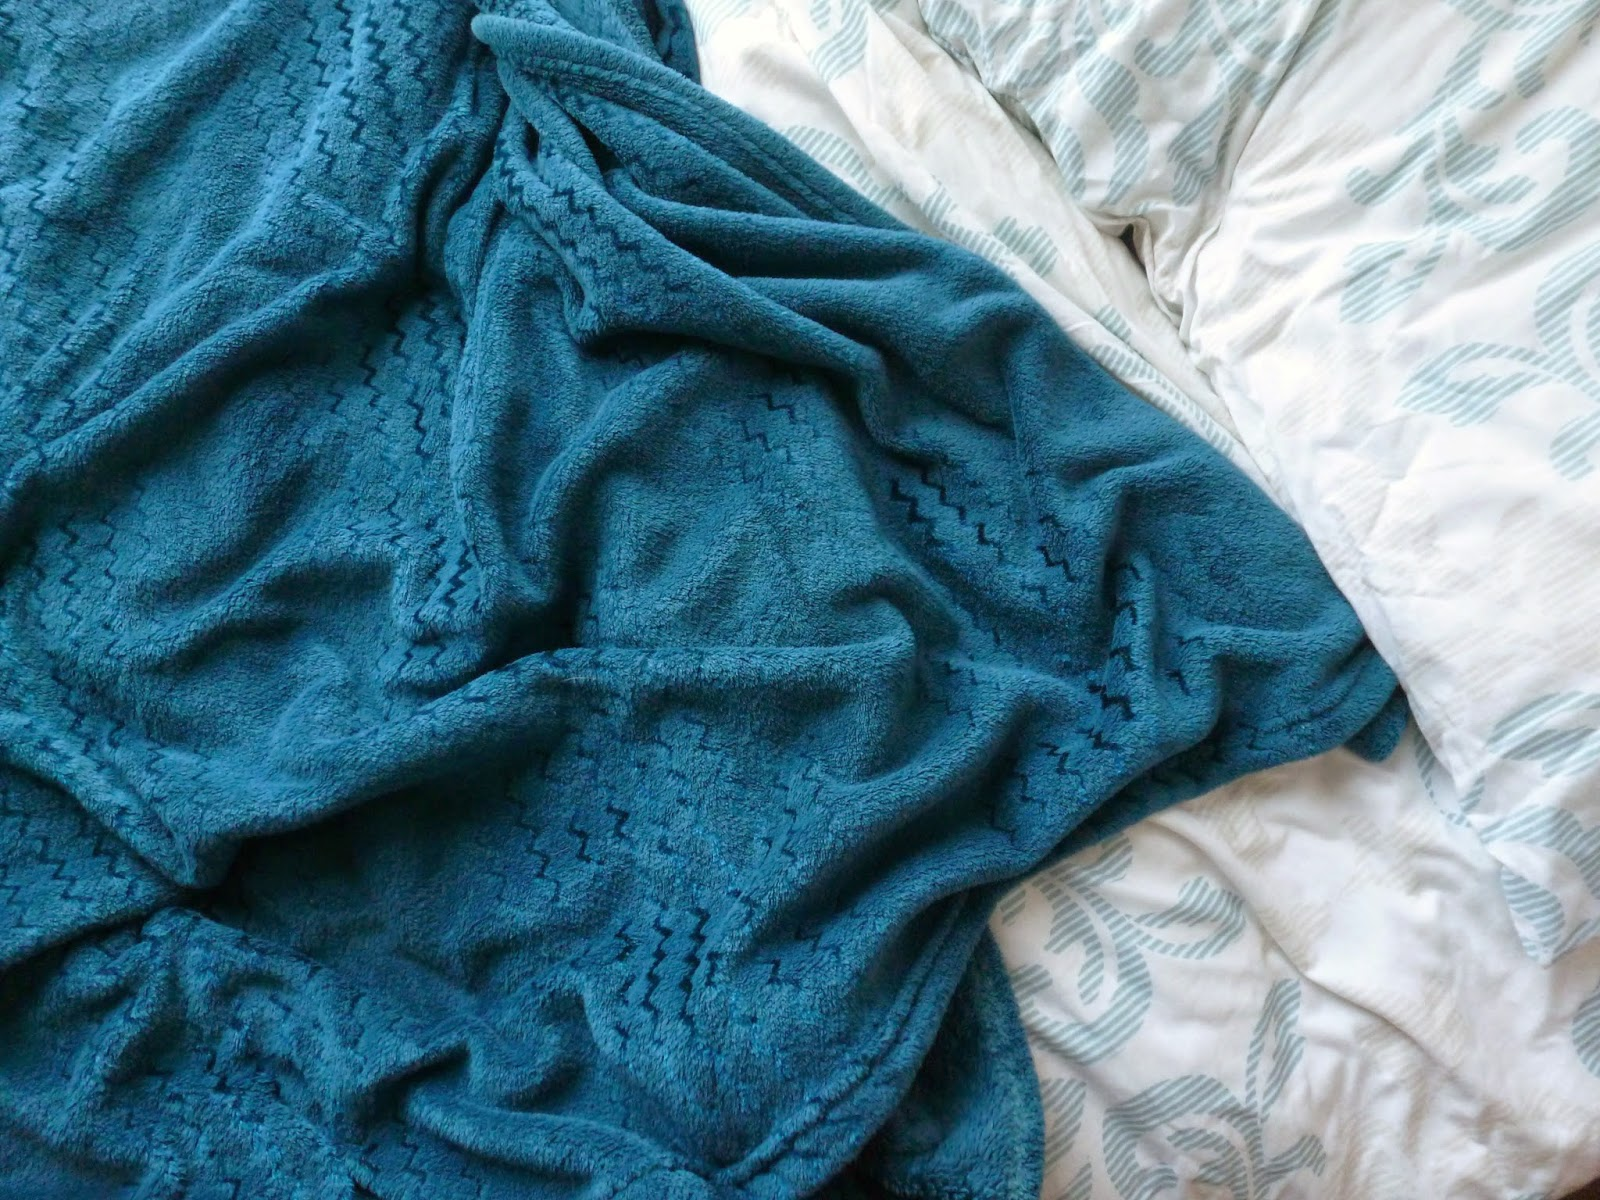 Fluffy blue blanket and bed spread